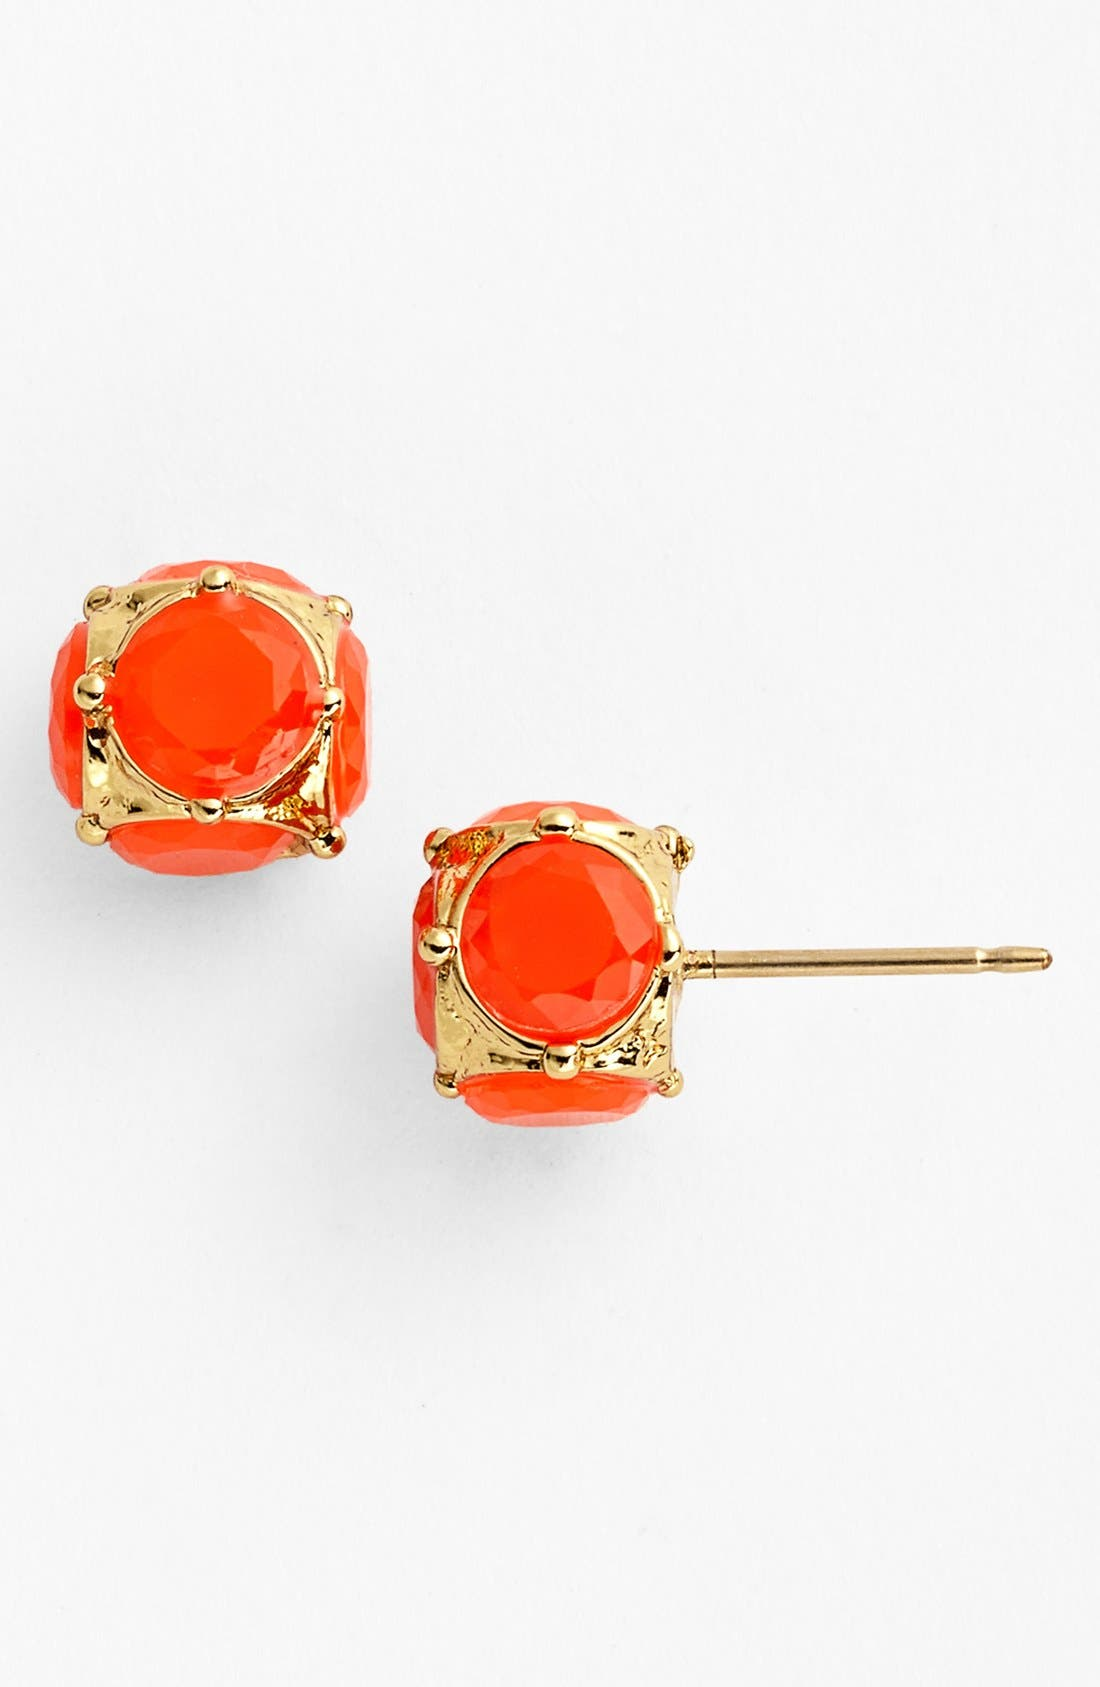 Main Image - kate spade new york small ball stud earrings